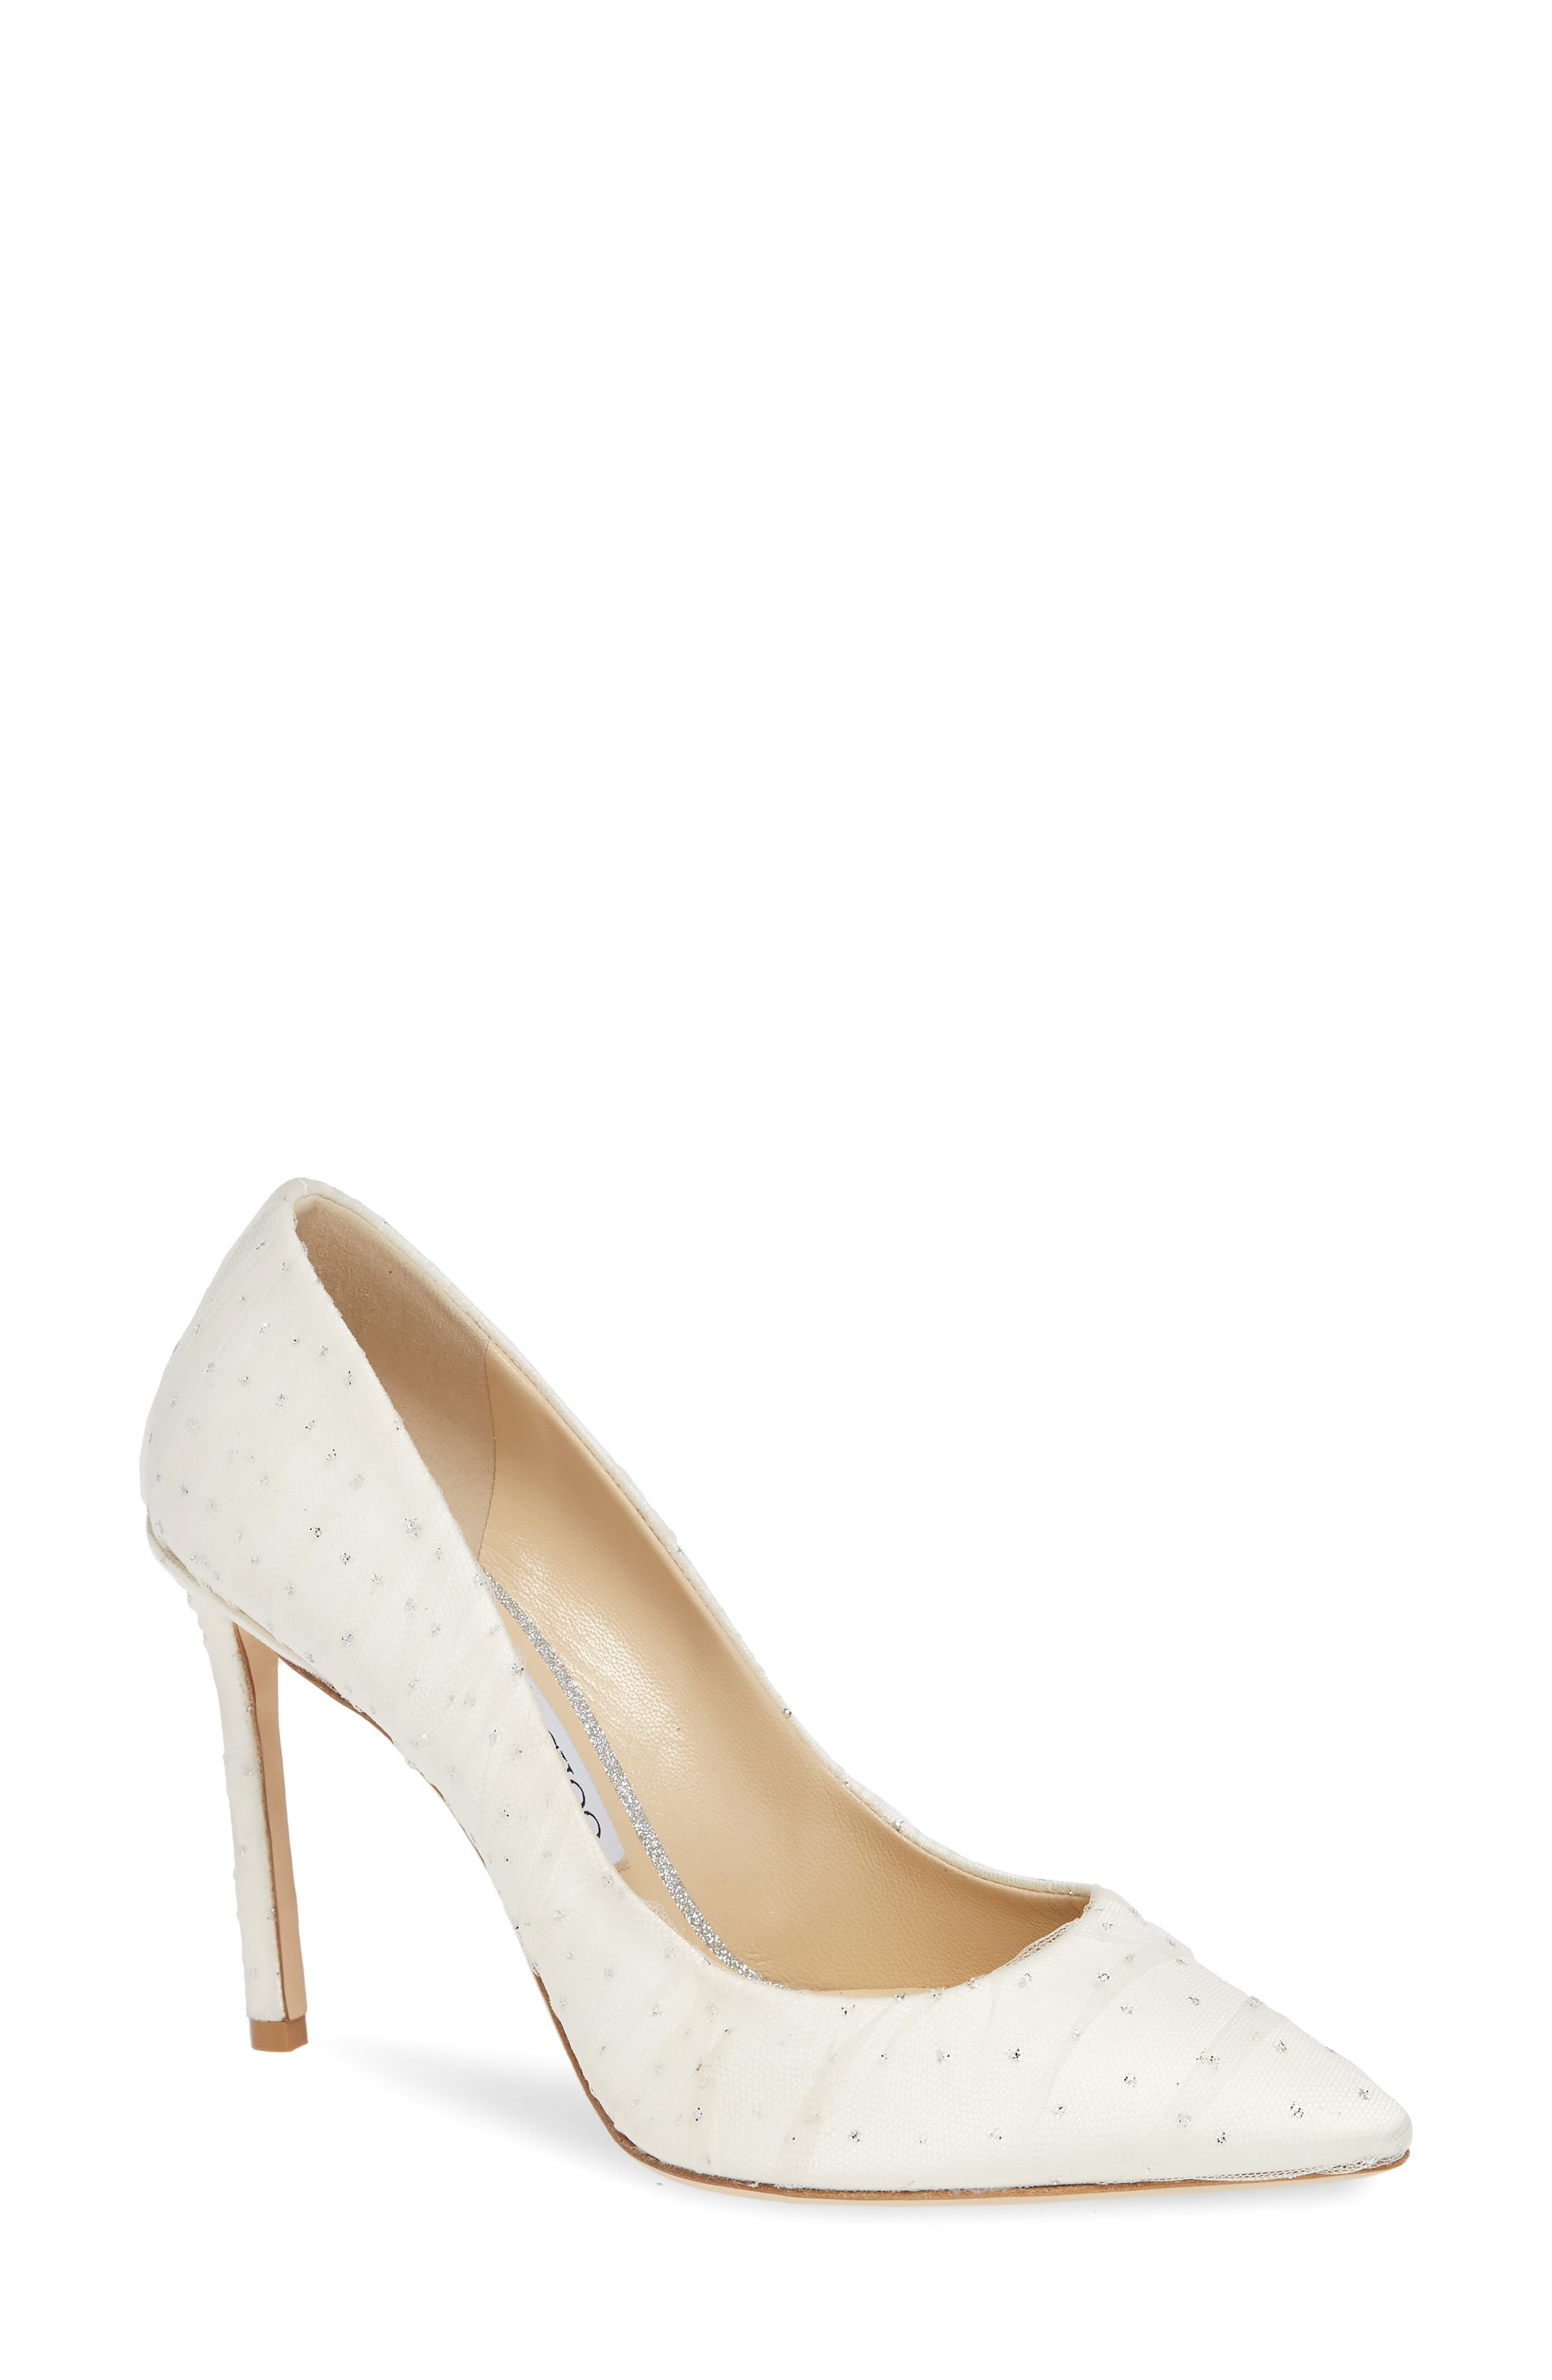 Romy Pointy Toe Pump,                             Main thumbnail 1, color,                             WHITE/ SILVER